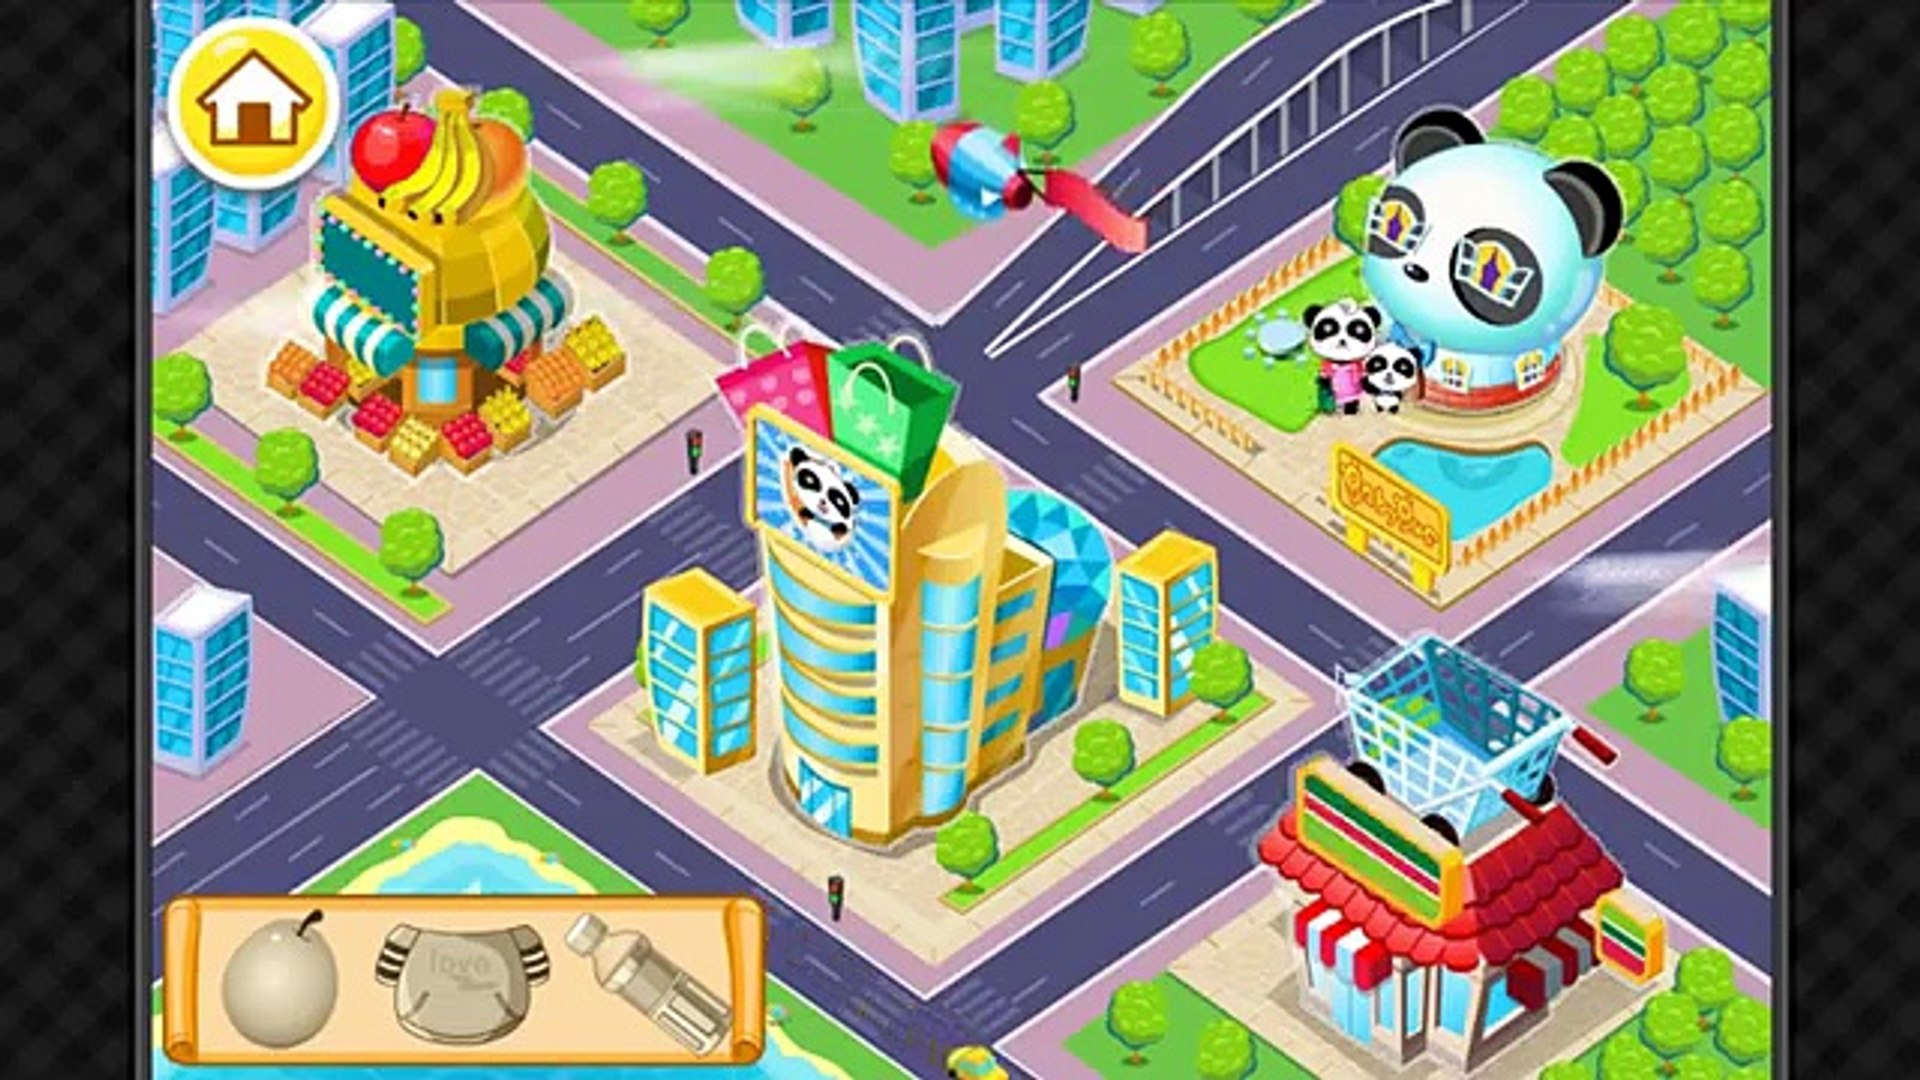 Travel Safety Tips l Kids learn attention to safety l Education Panda game for kids